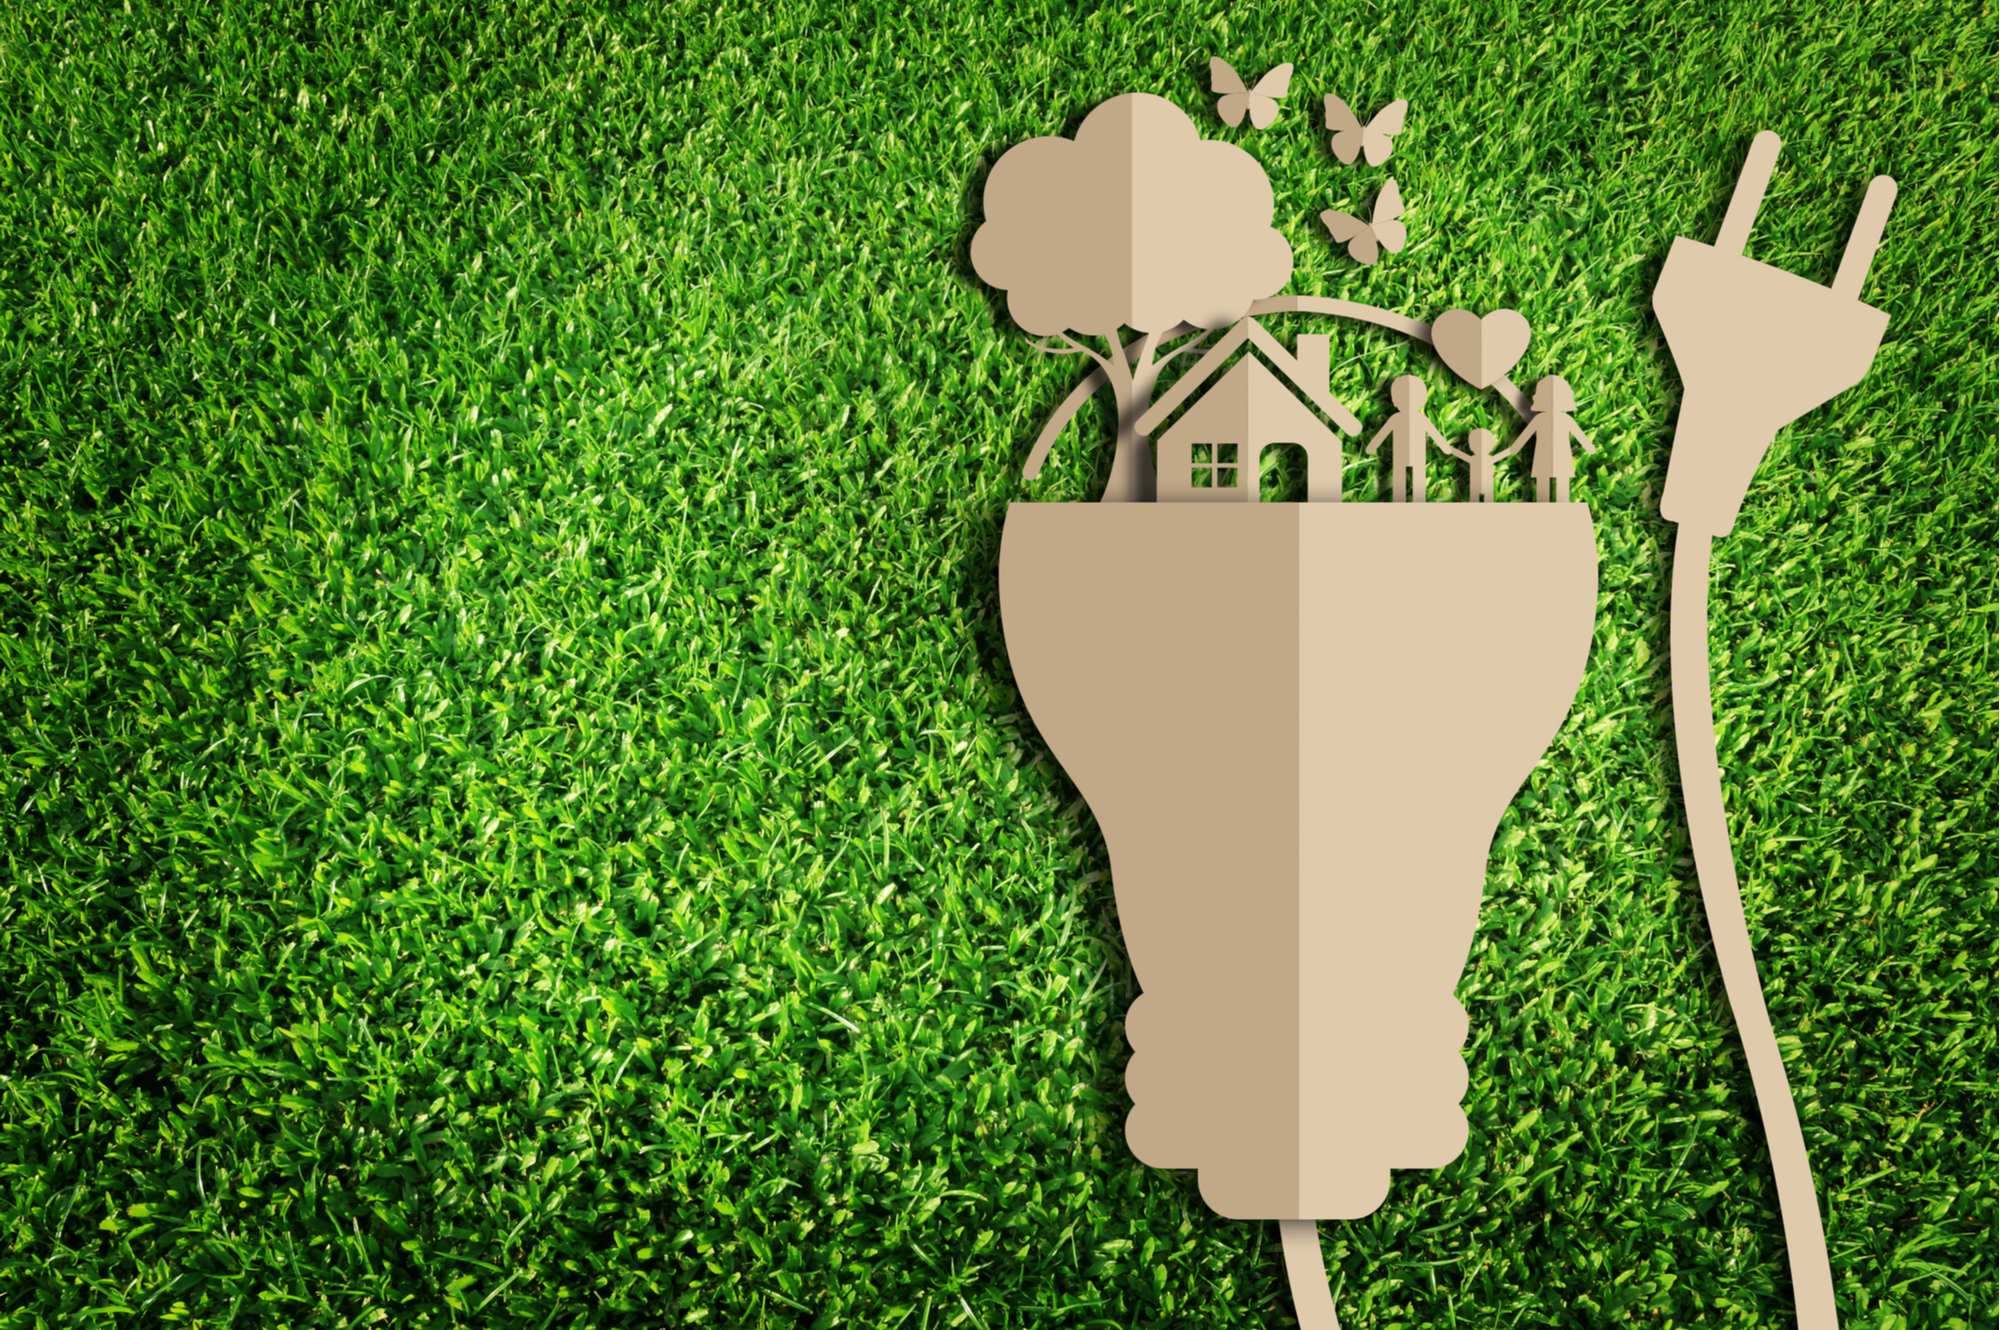 5 ways to make your house more eco-friendly